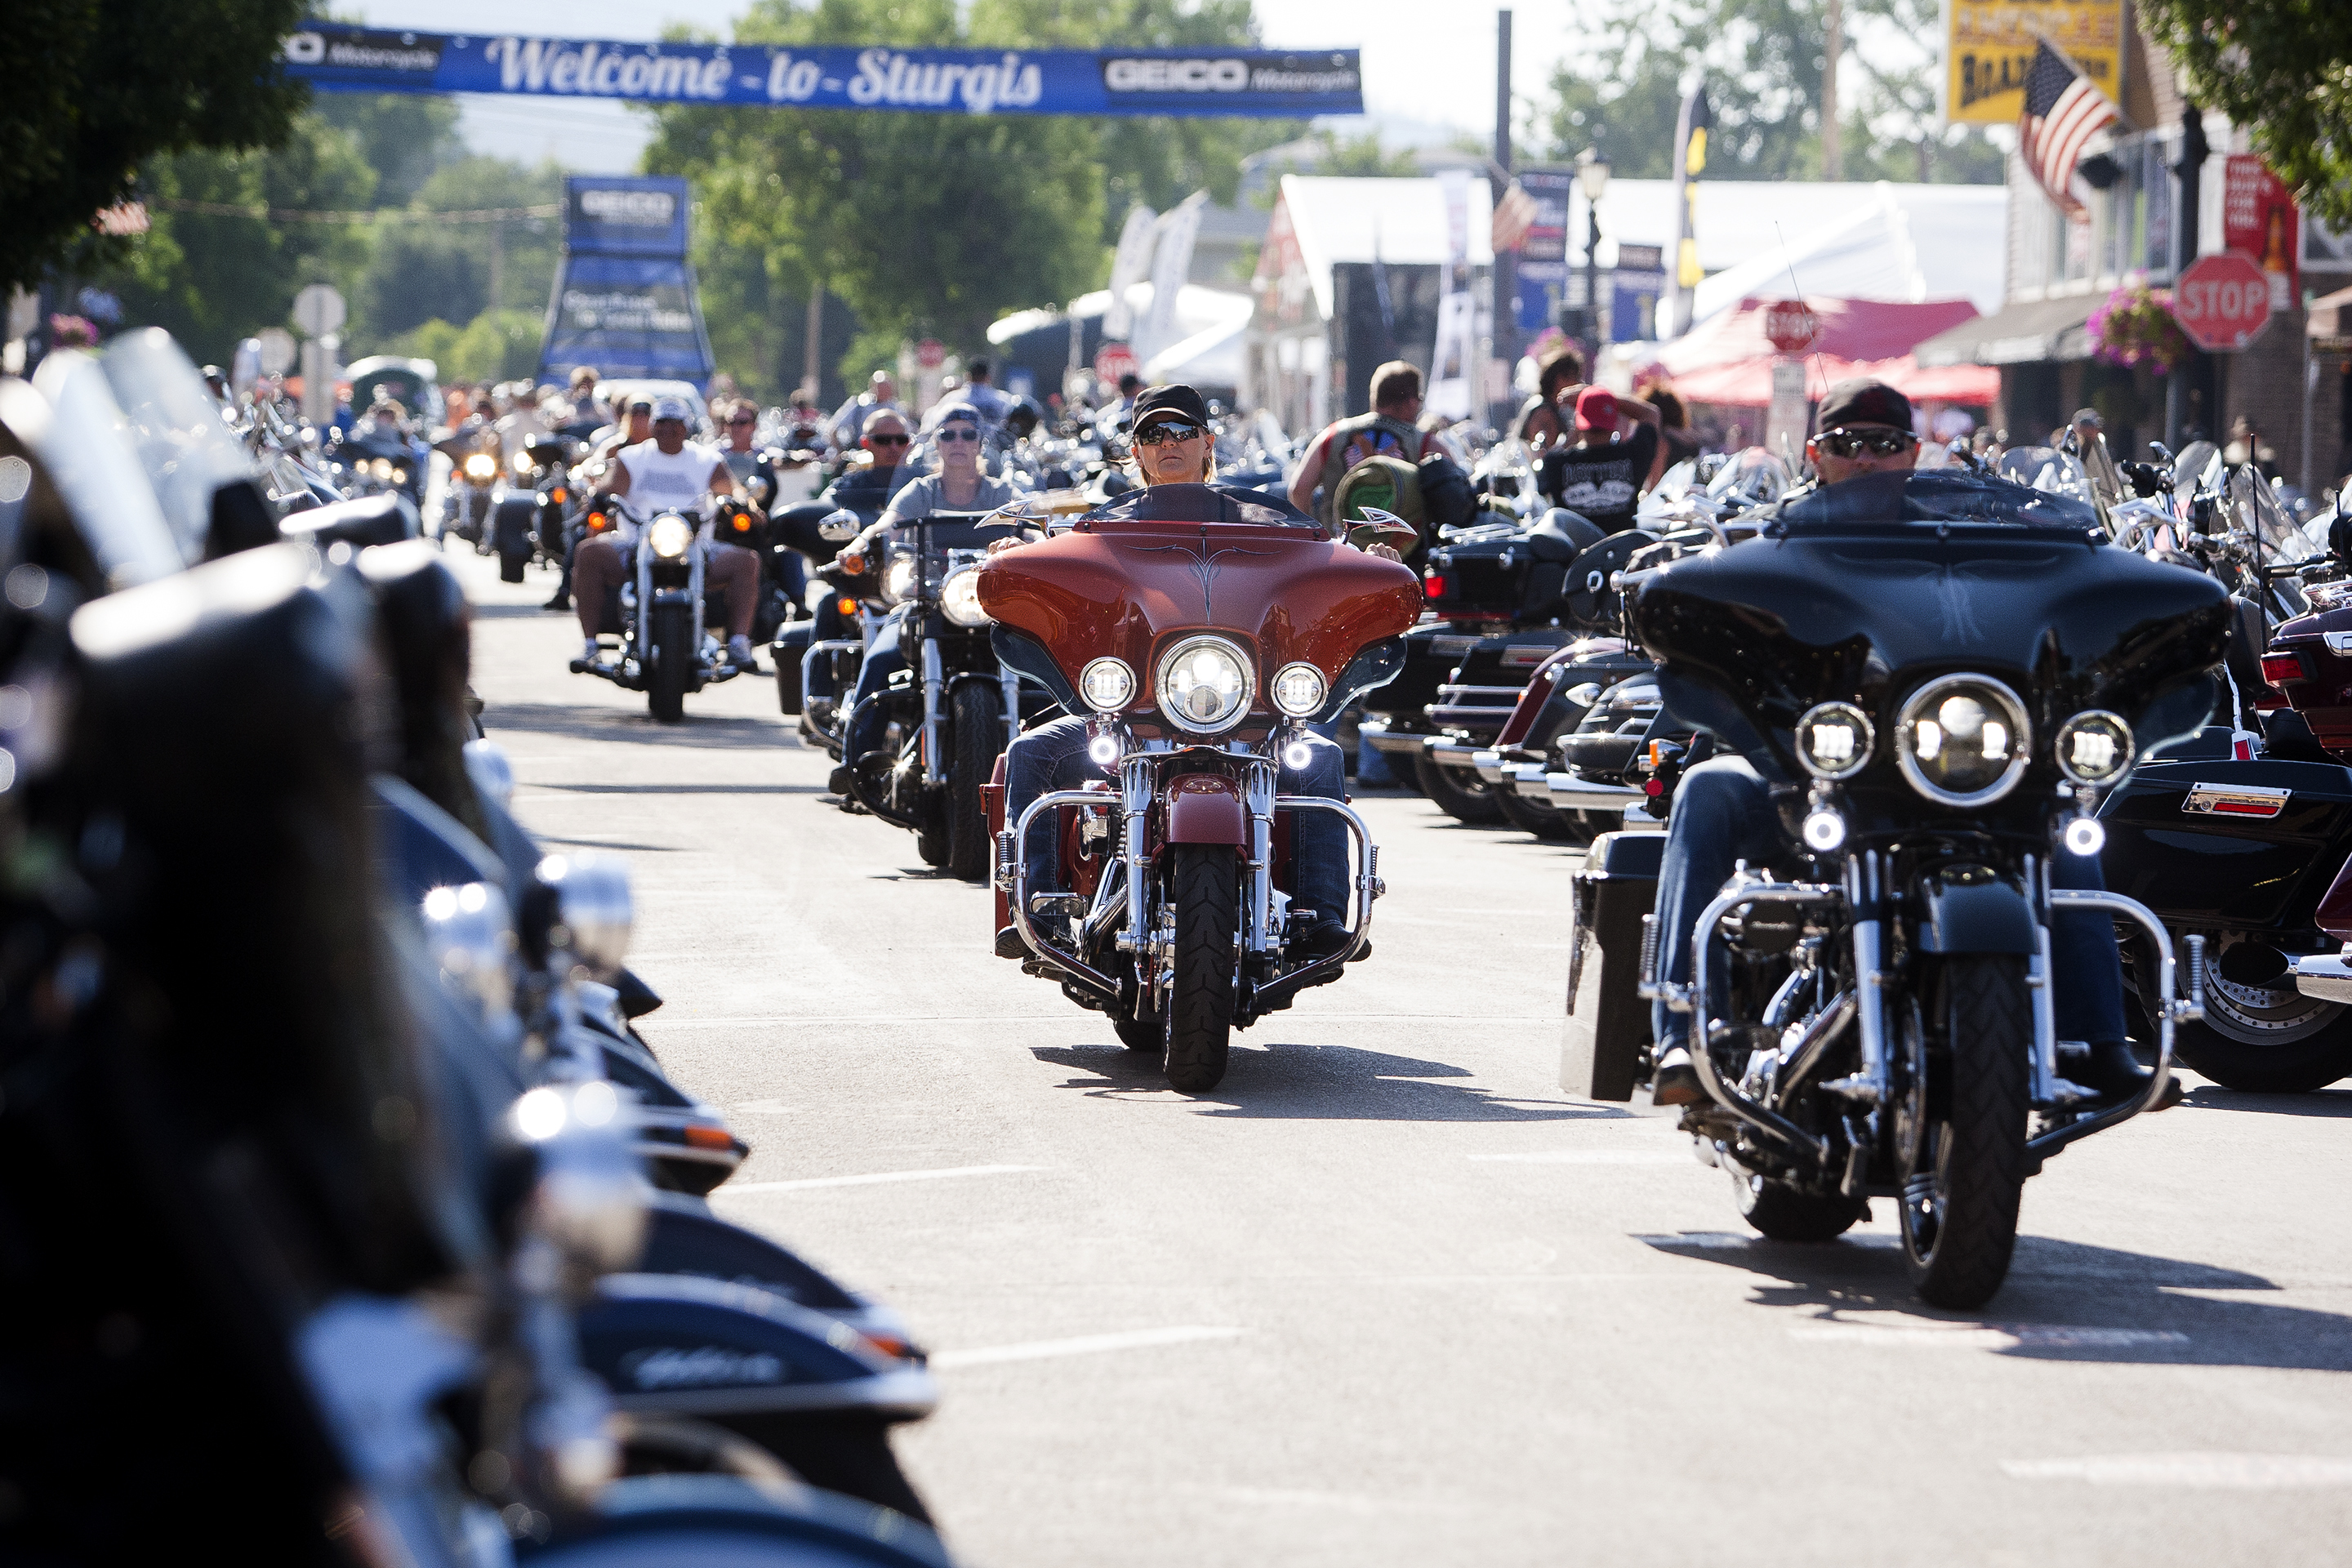 In this Aug. 5, 2016 file photo, bikers ride down Main Street in downtown Sturgis, S.D., before the 76th Sturgis motorcycle rally officially begins.